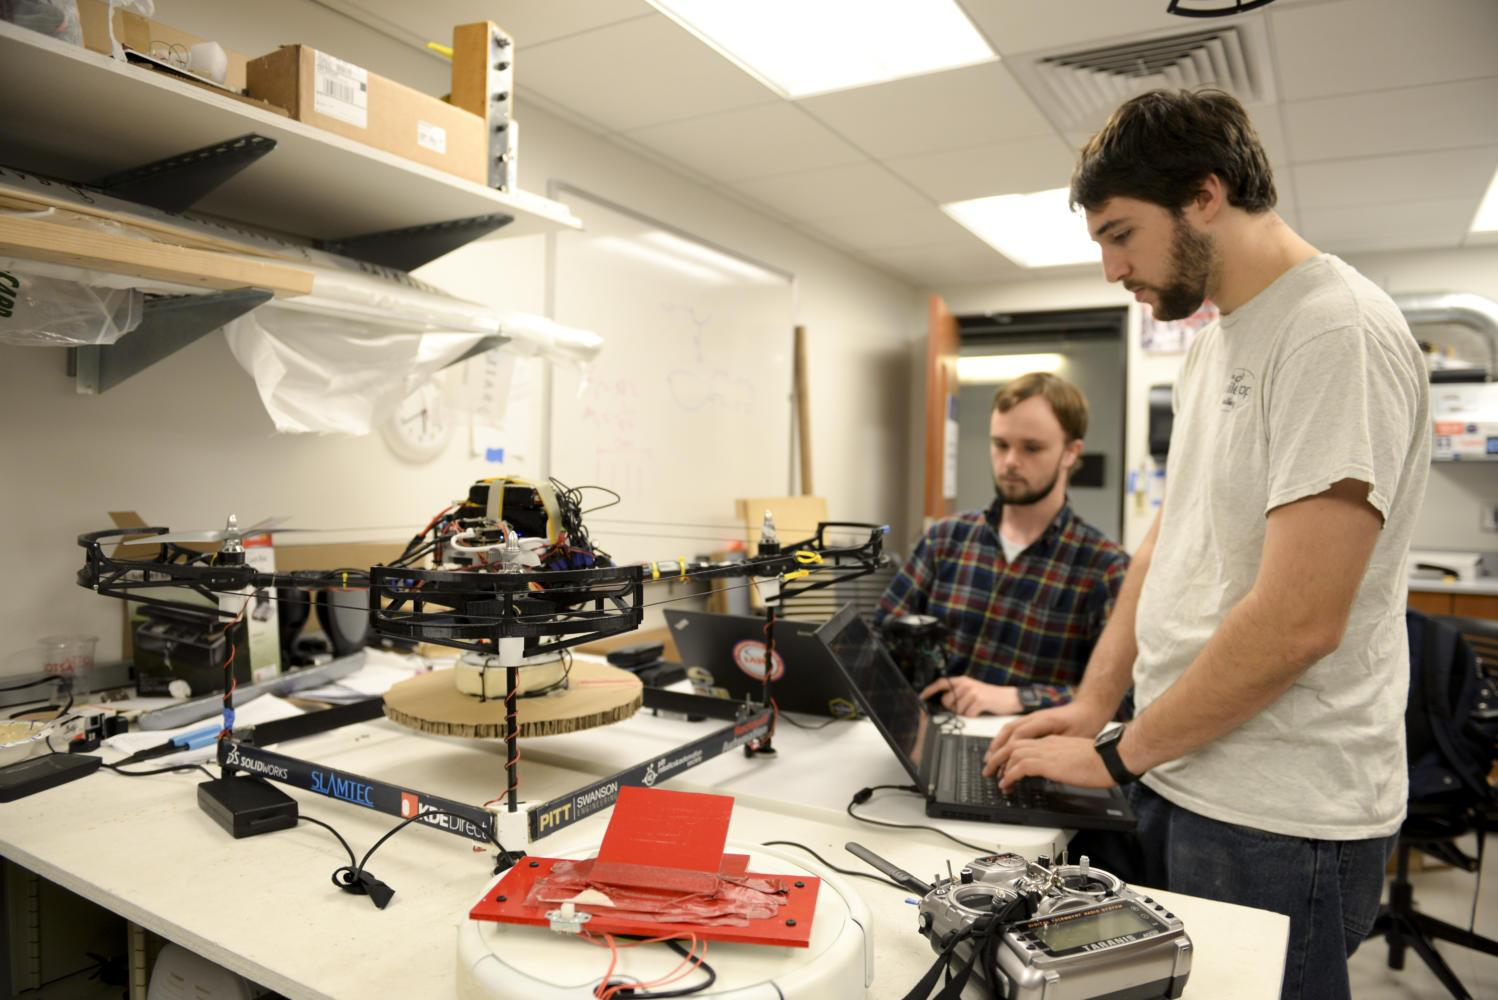 Liam Berti (left) and Levi Burner (right) program the drone in their lab. (Photo by Isabelle Glatts | Staff Photographer)